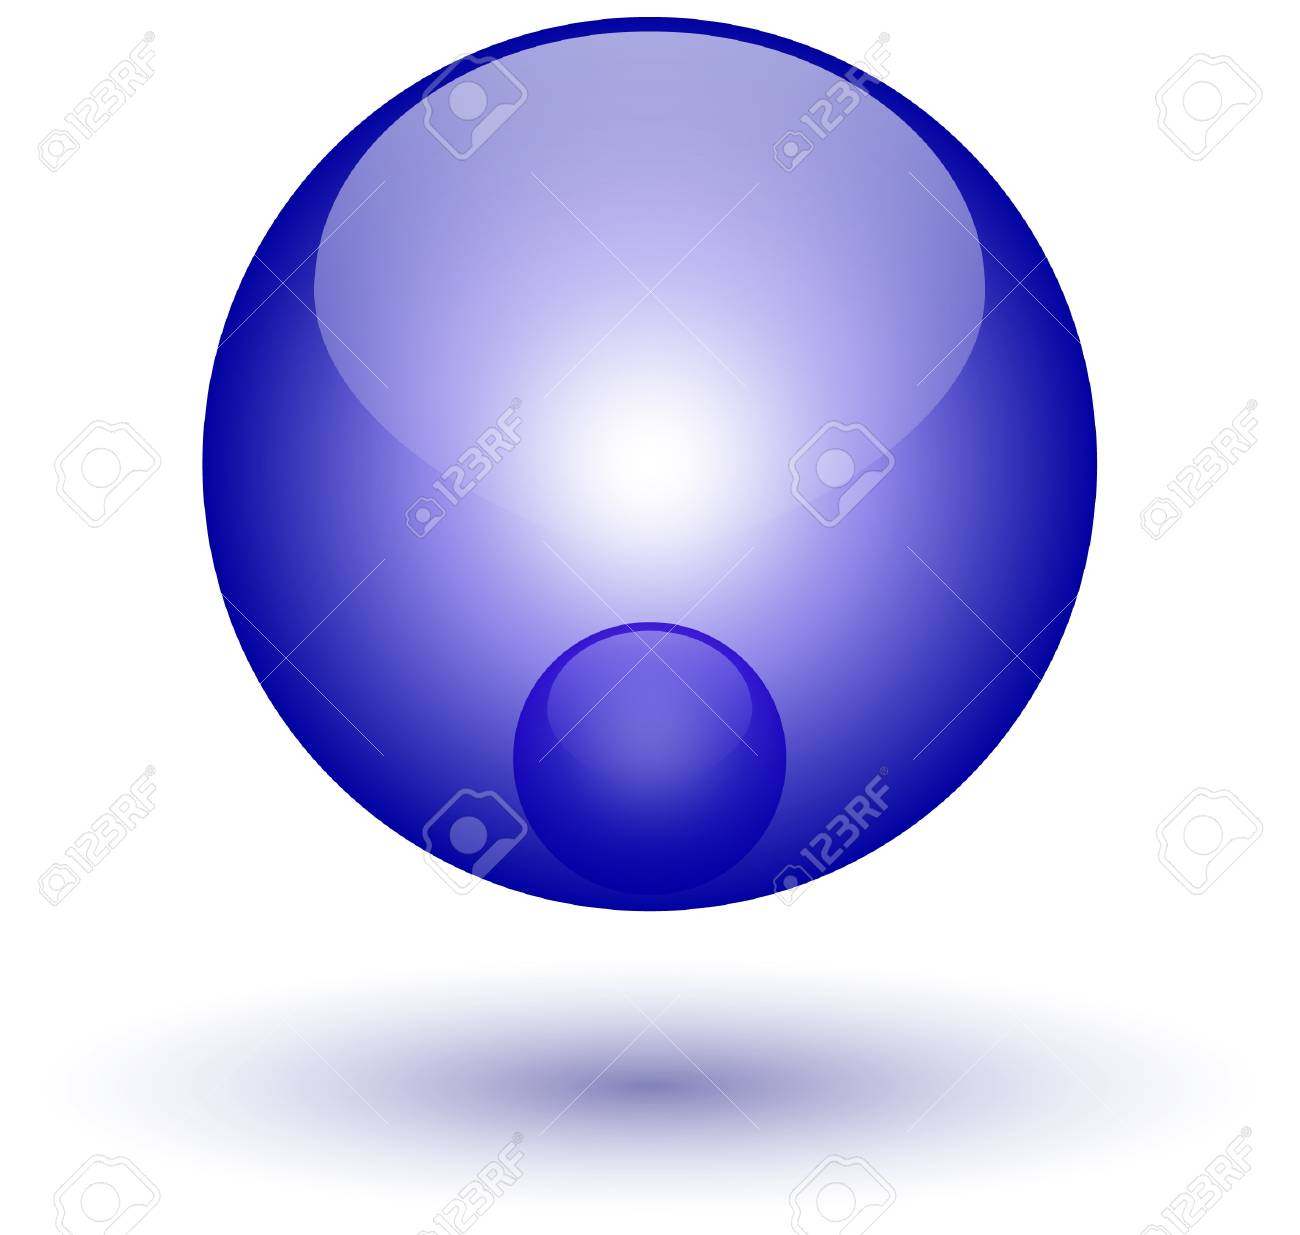 ball Stock Vector - 12830832